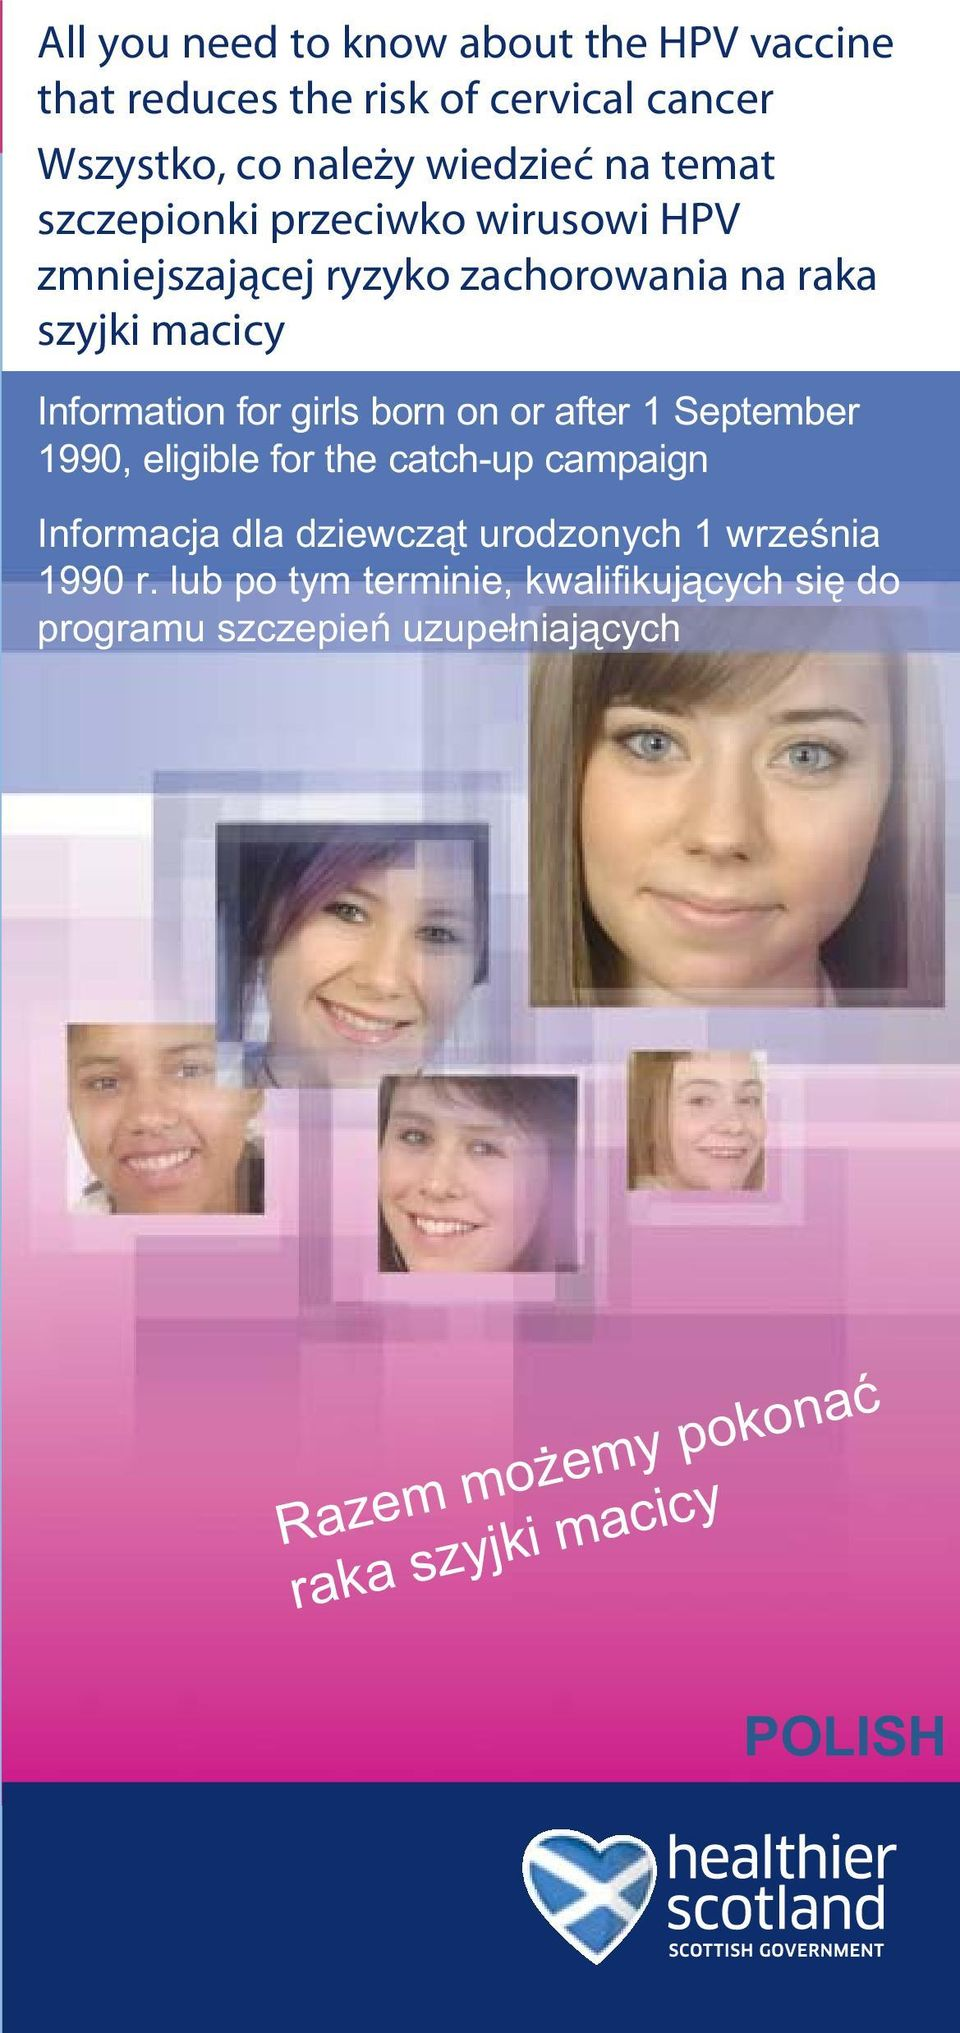 girls born on or after 1 September 1990, eligible for the catch-up campaign Informacja dla dziewcz t urodzonych 1